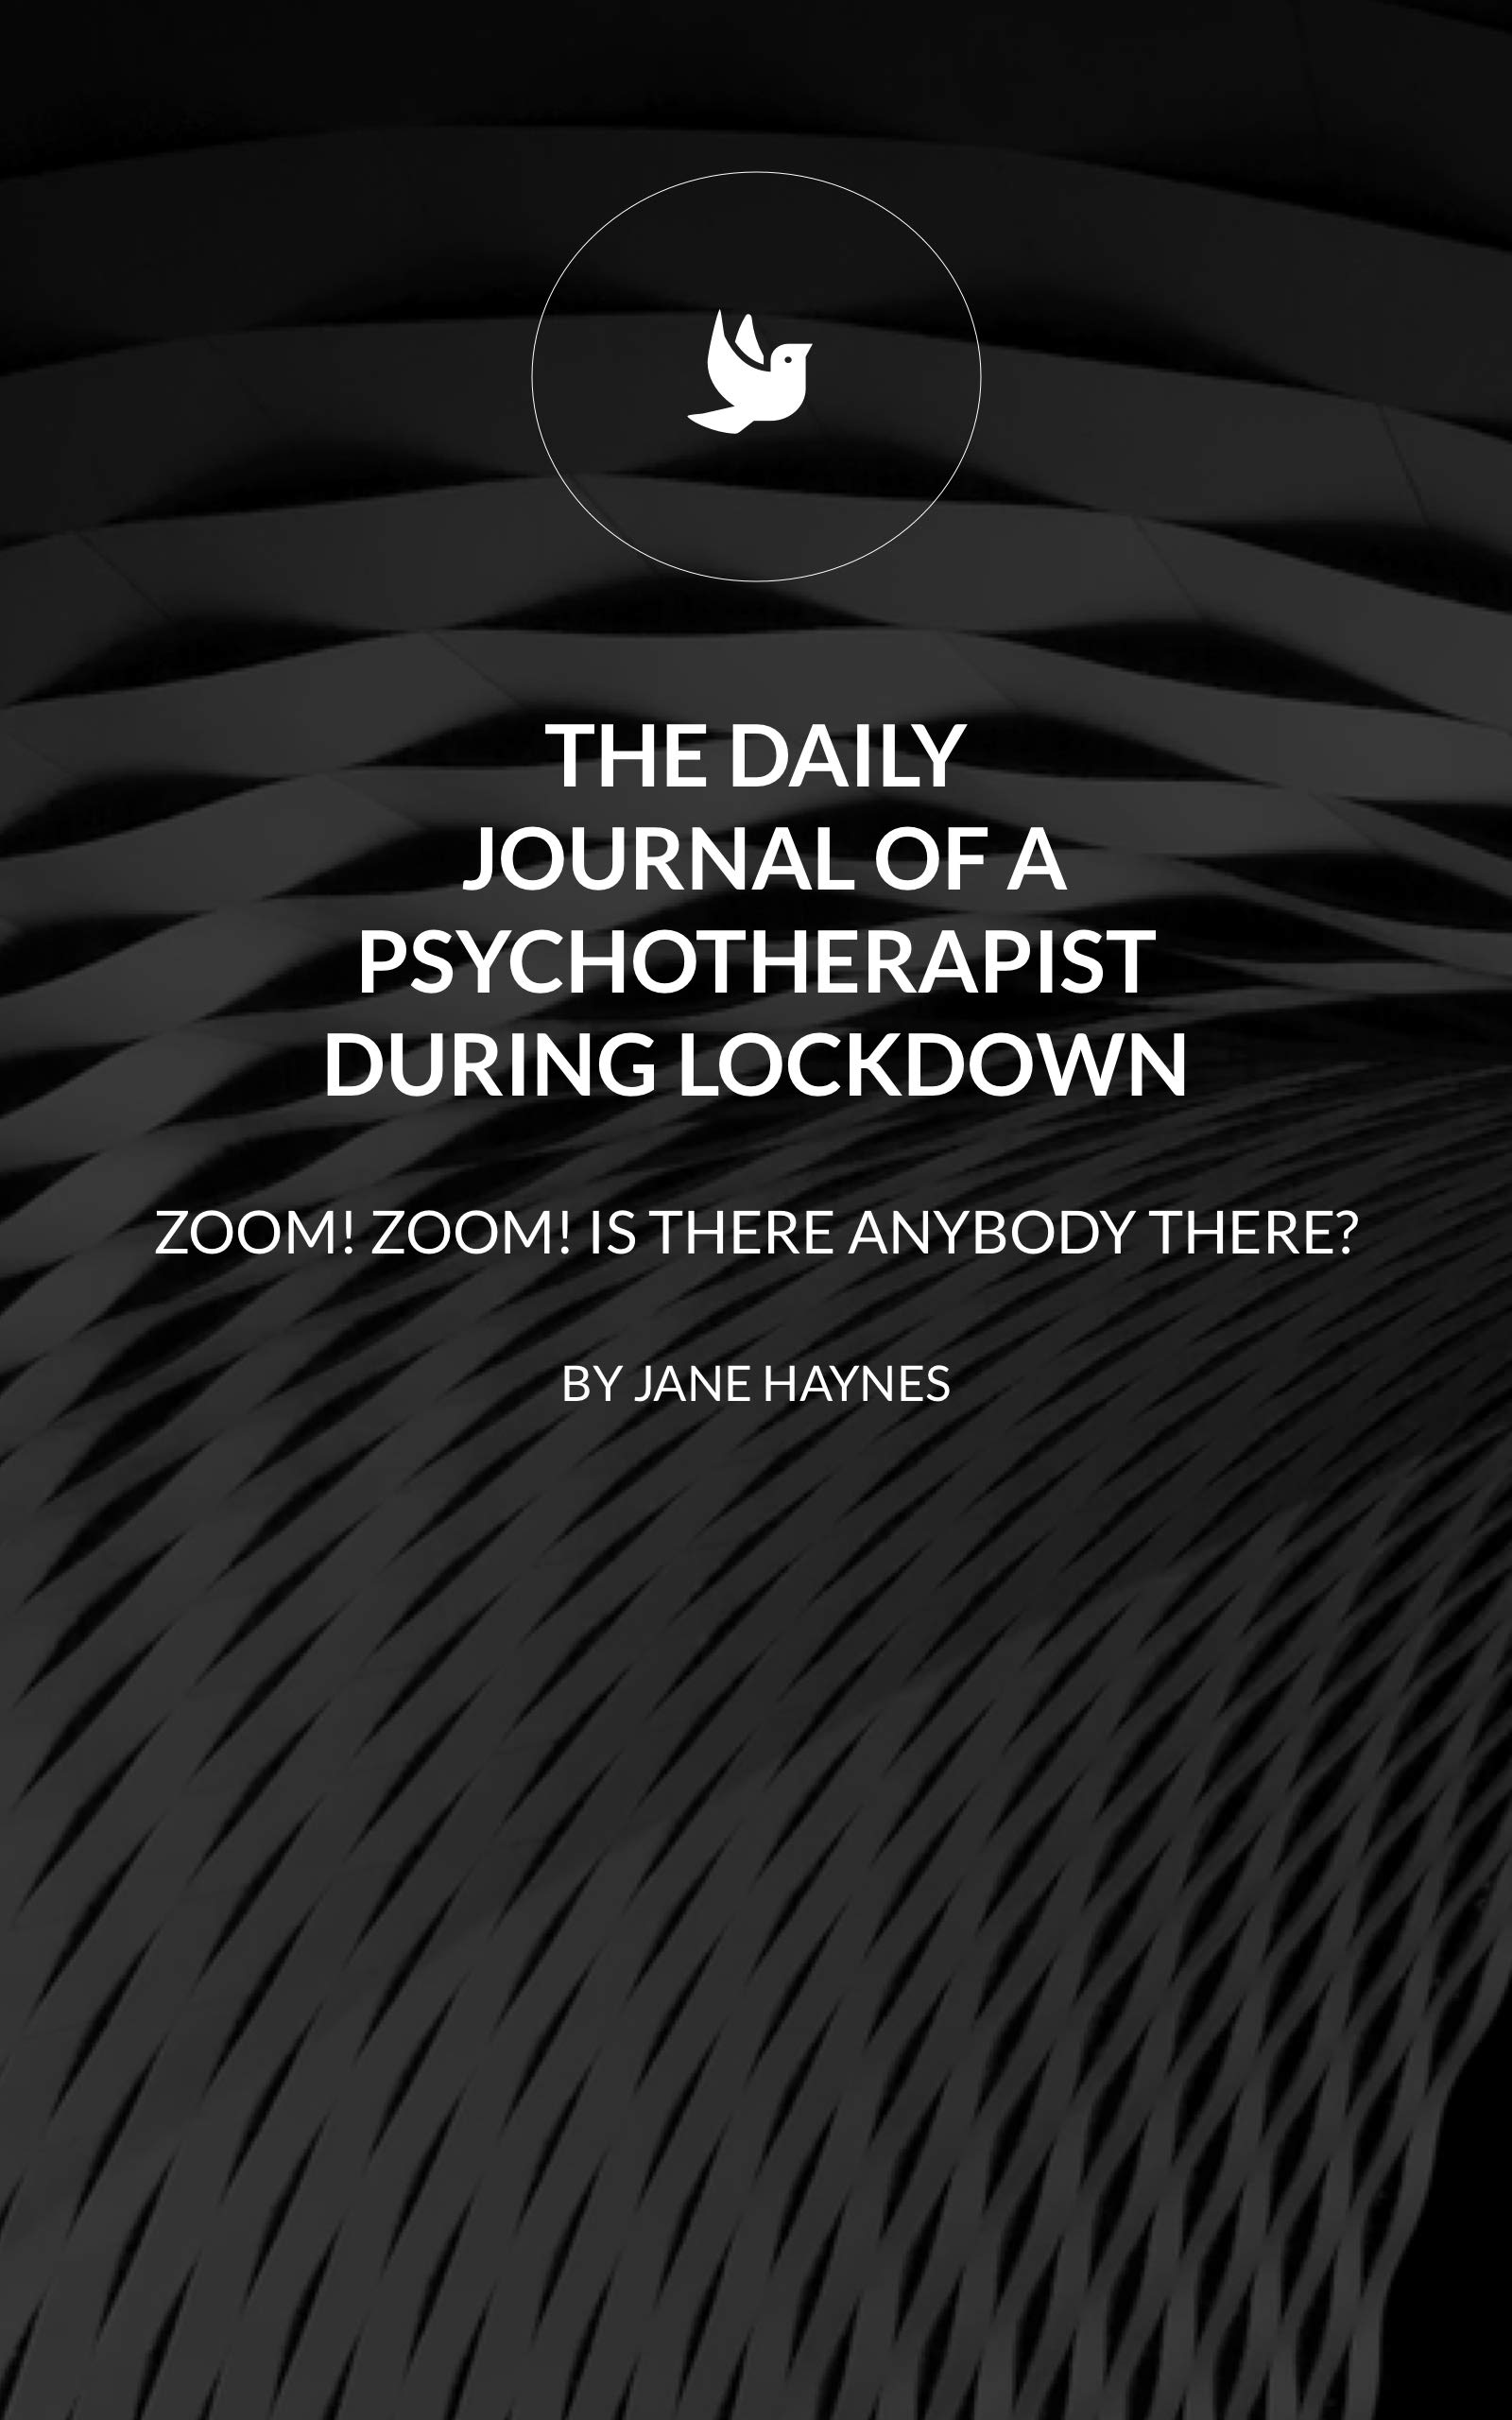 THE DAILY JOURNAL OF A PSYCHOTHERAPIST DURING LOCKDOWN: ZOOM ZOOM! IS THERE ANYBODY THERE?